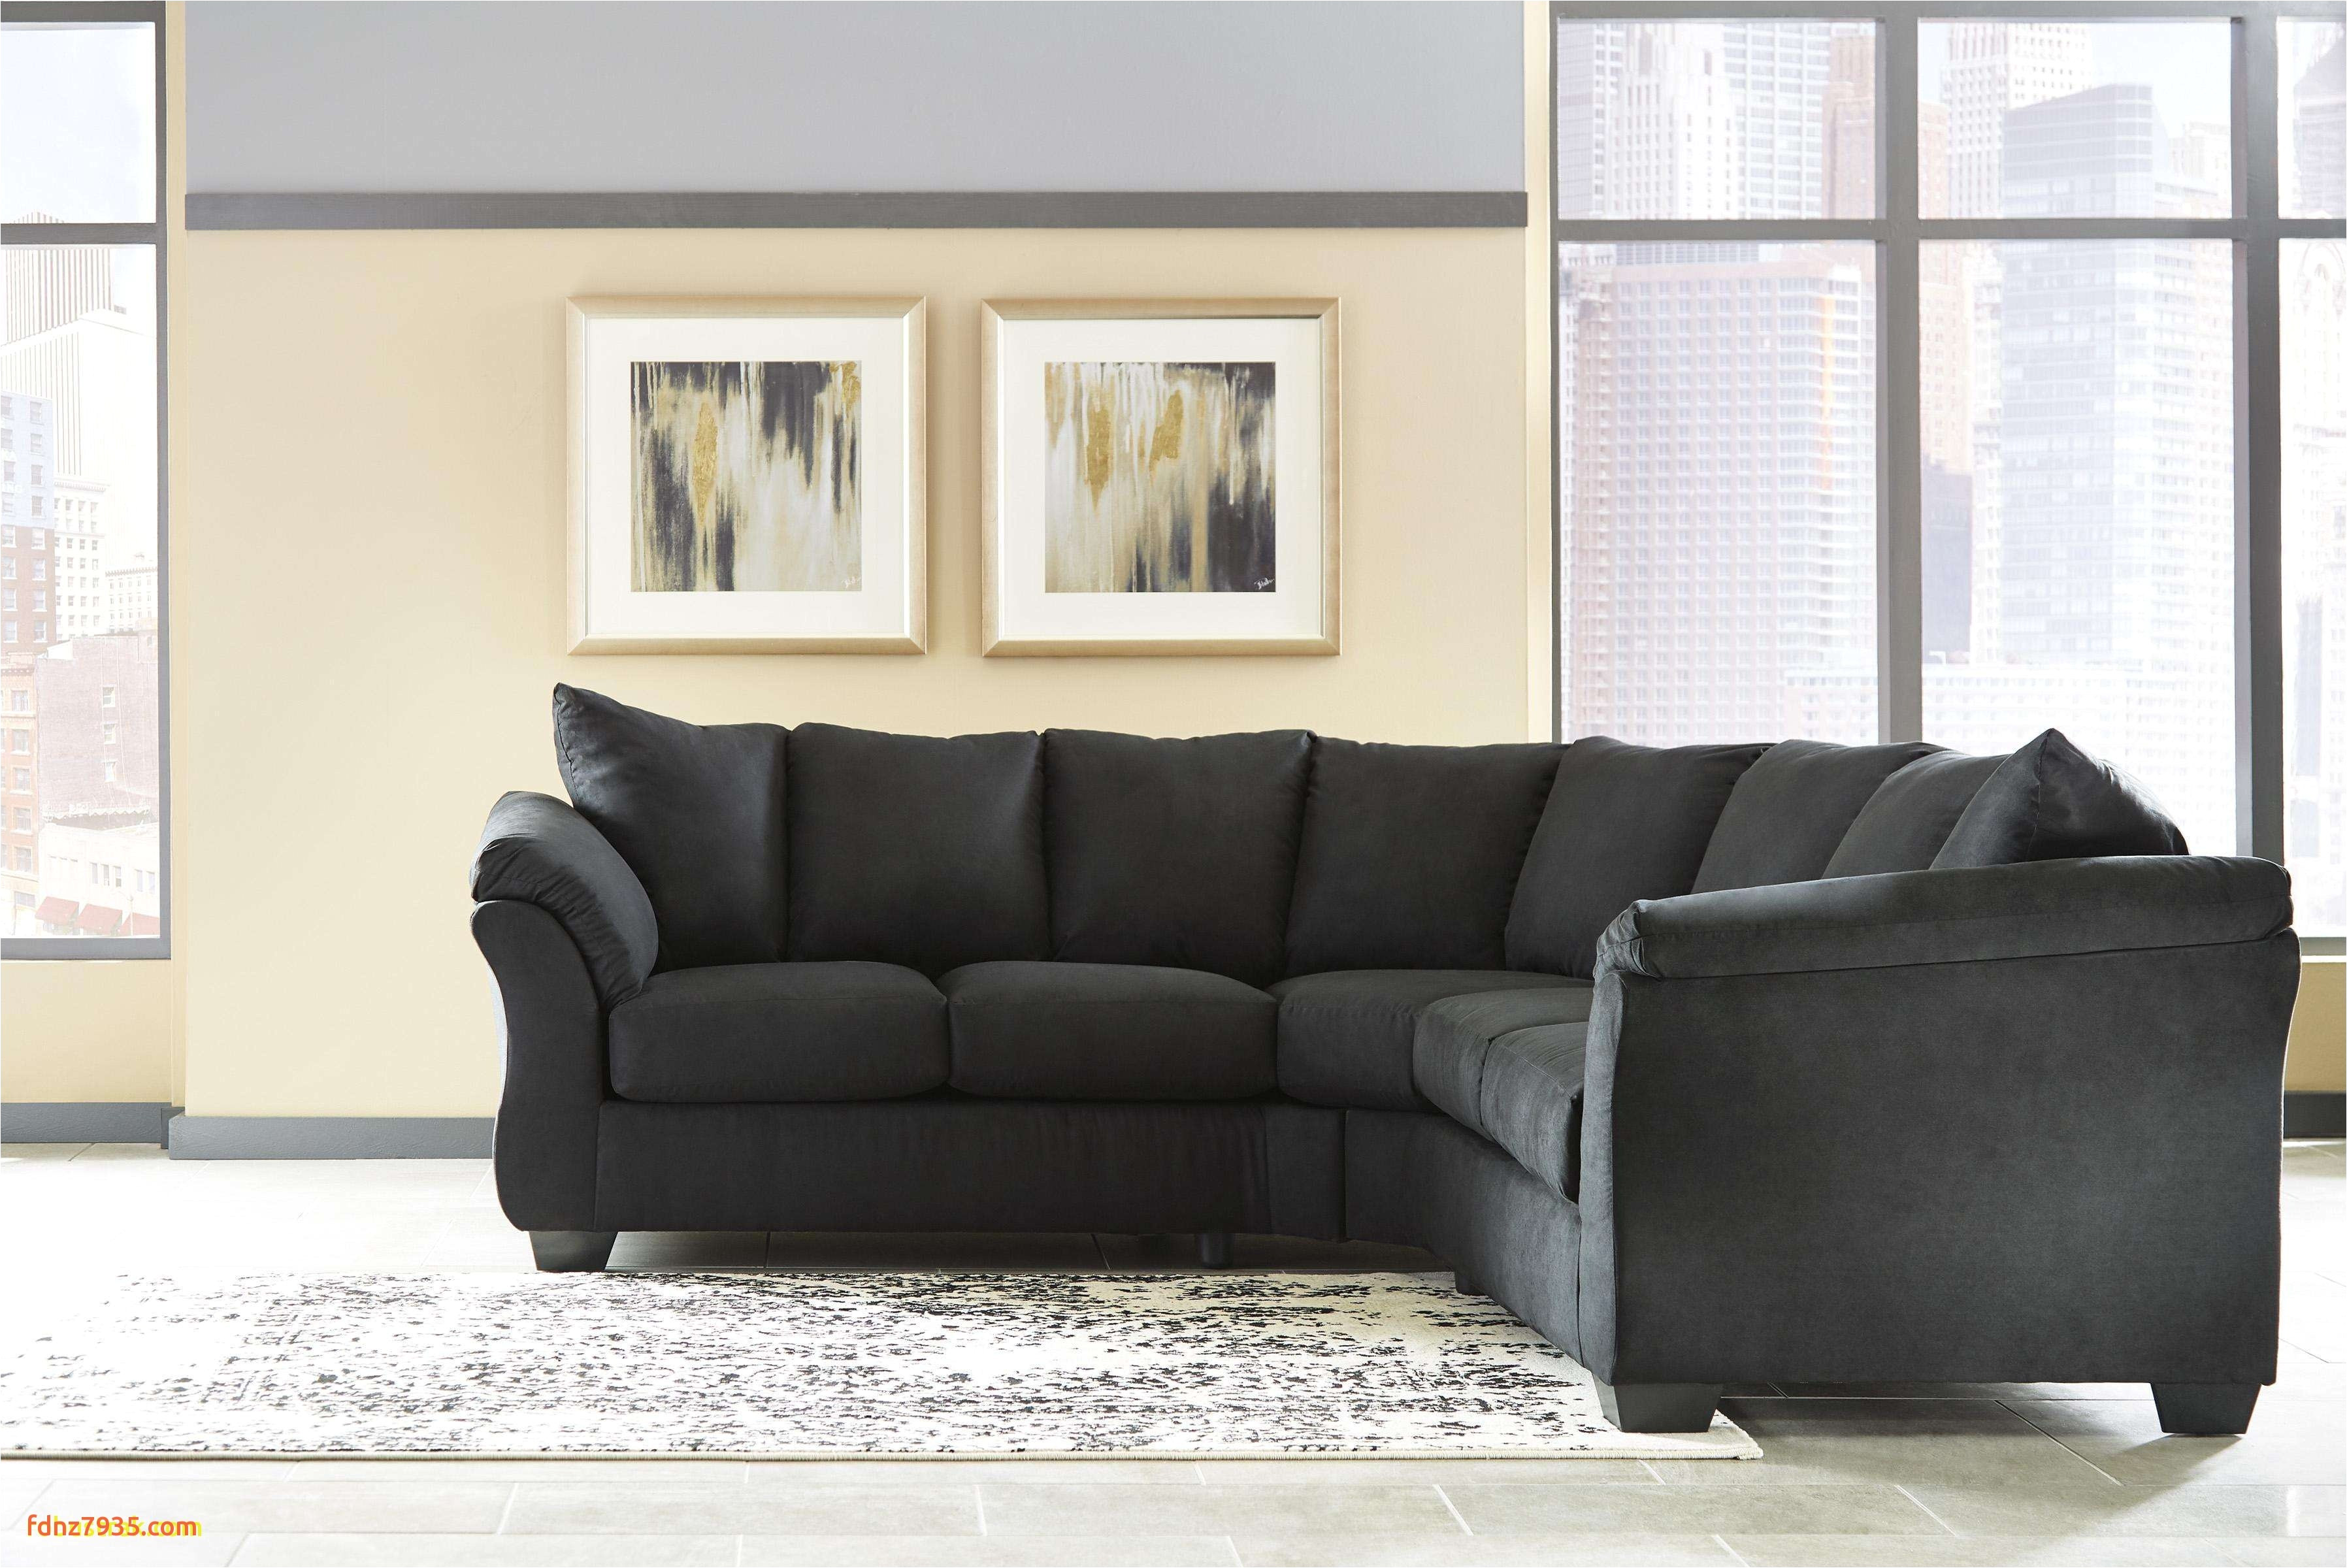 American Freight Discount Furniture Near Me | AdinaPorter